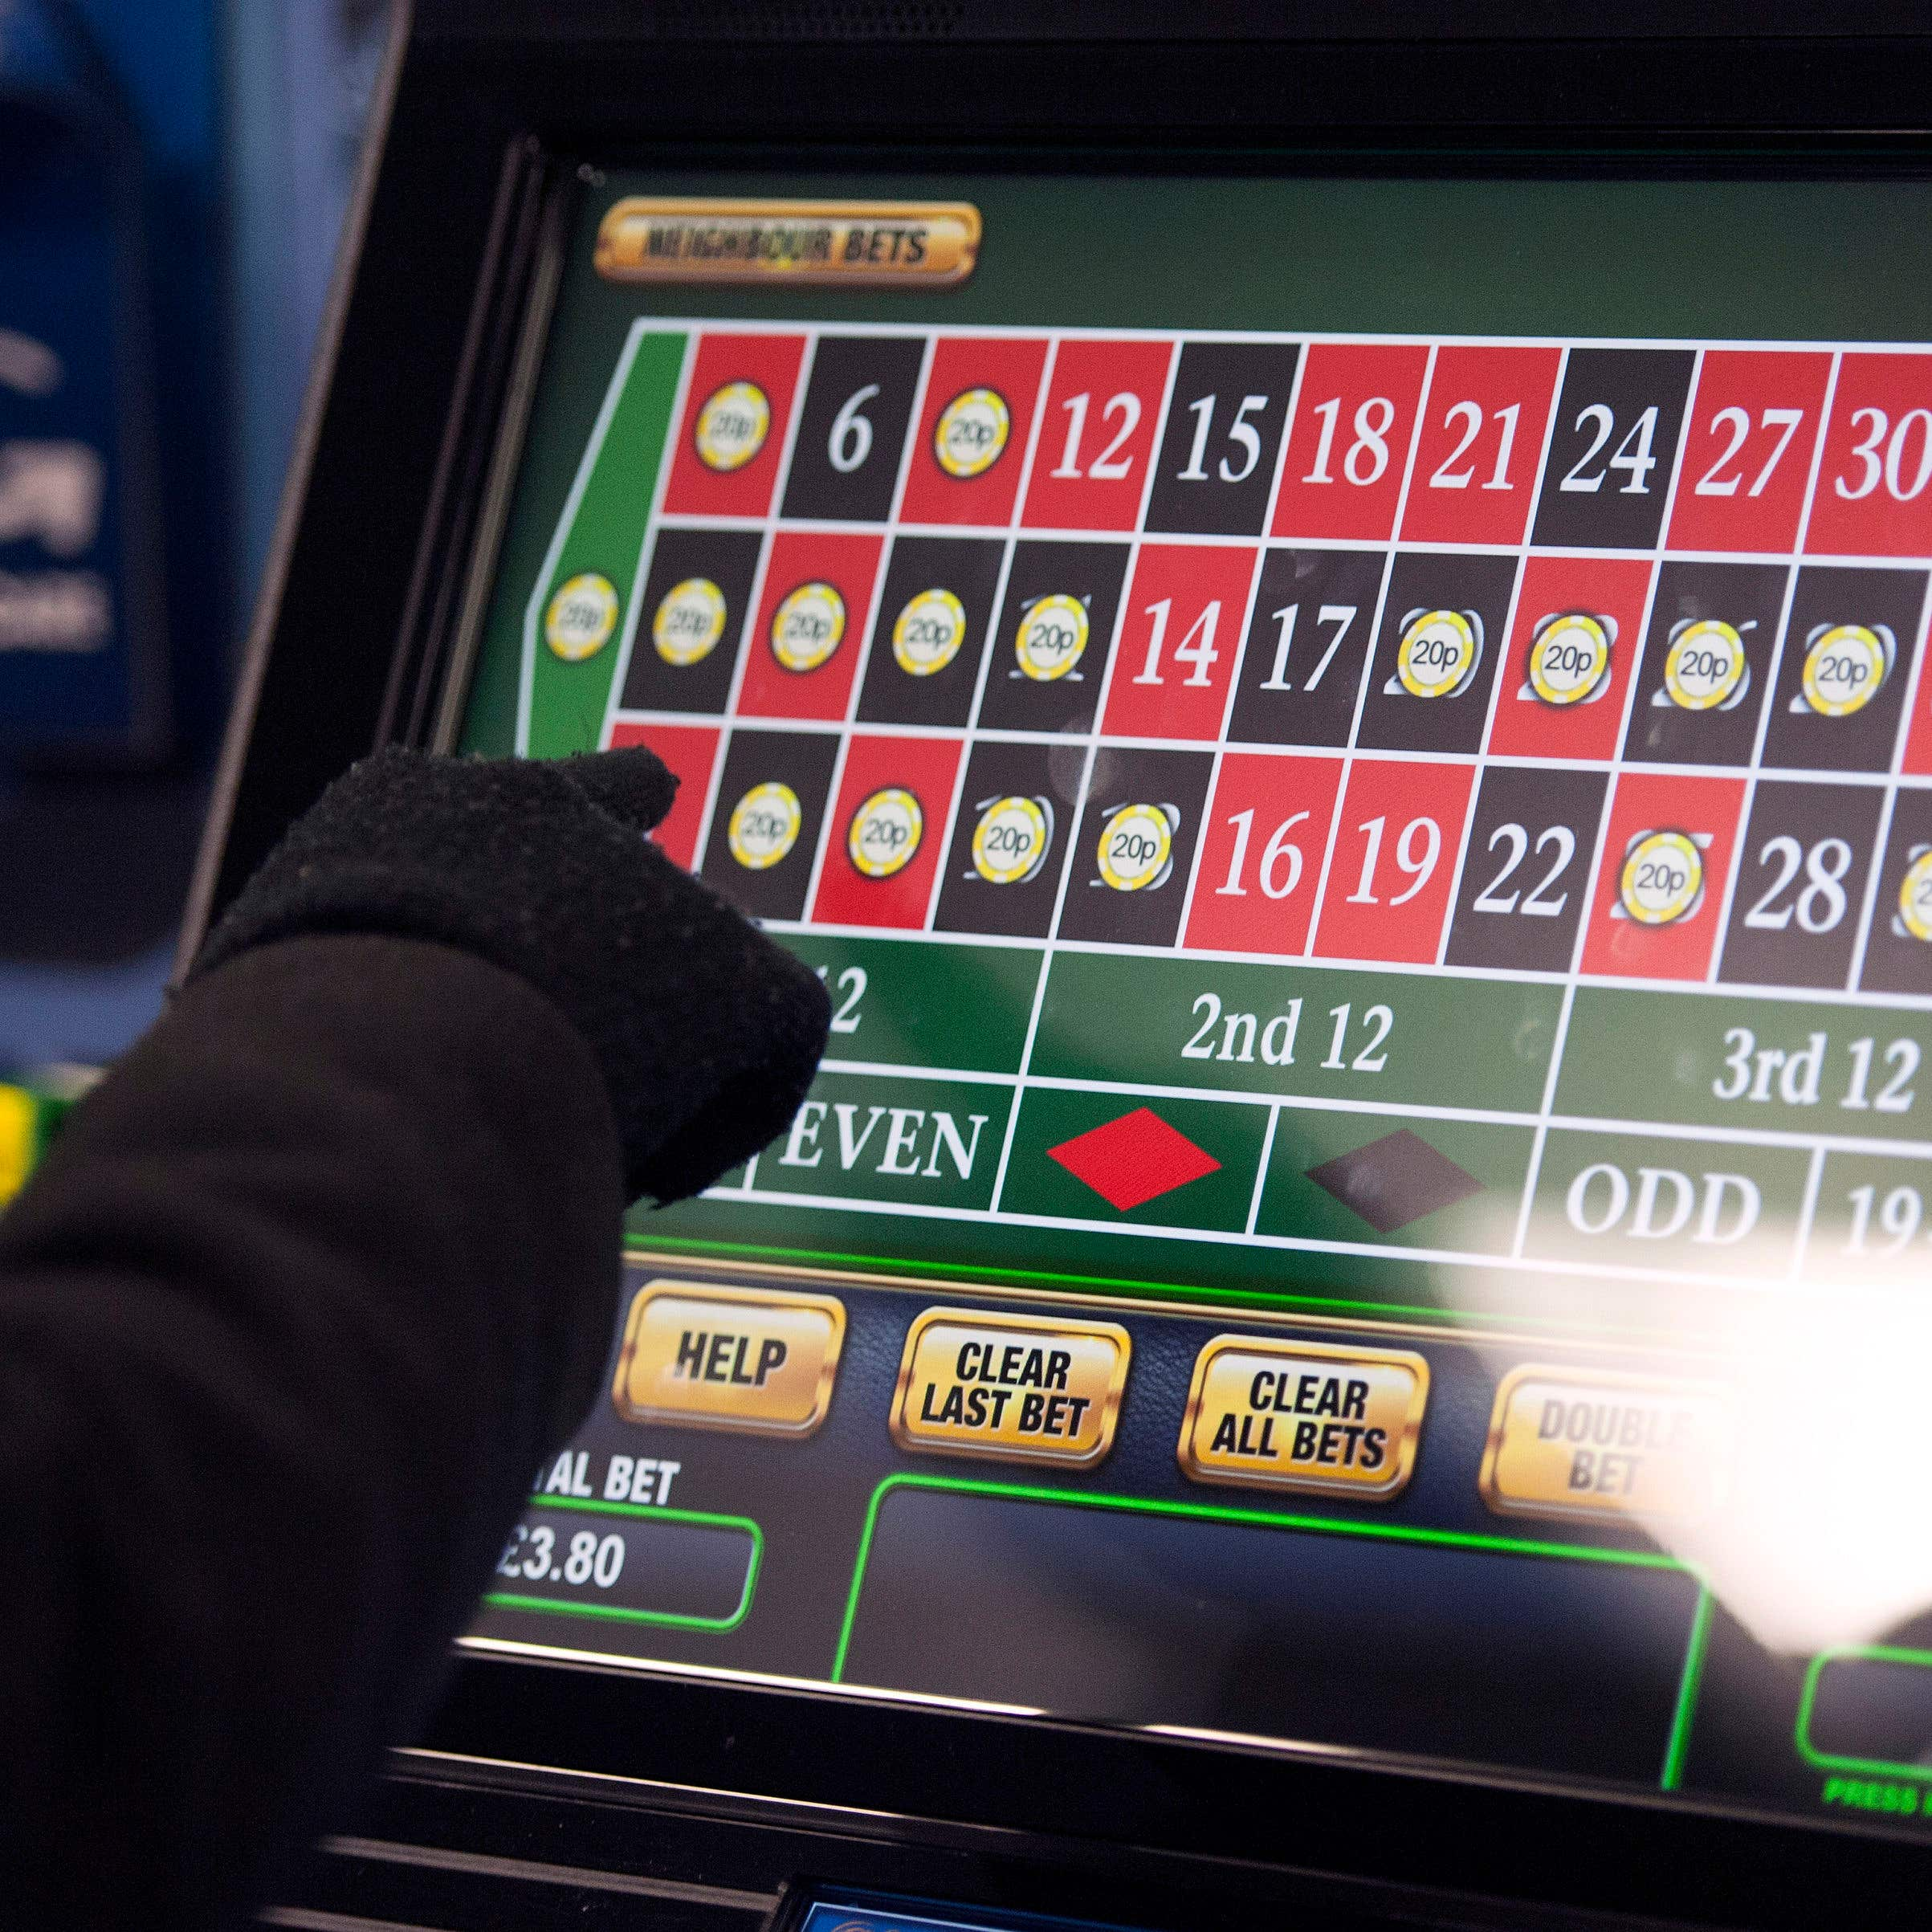 Maximum stakes on fixed odds betting terminals will be cut in April 2019